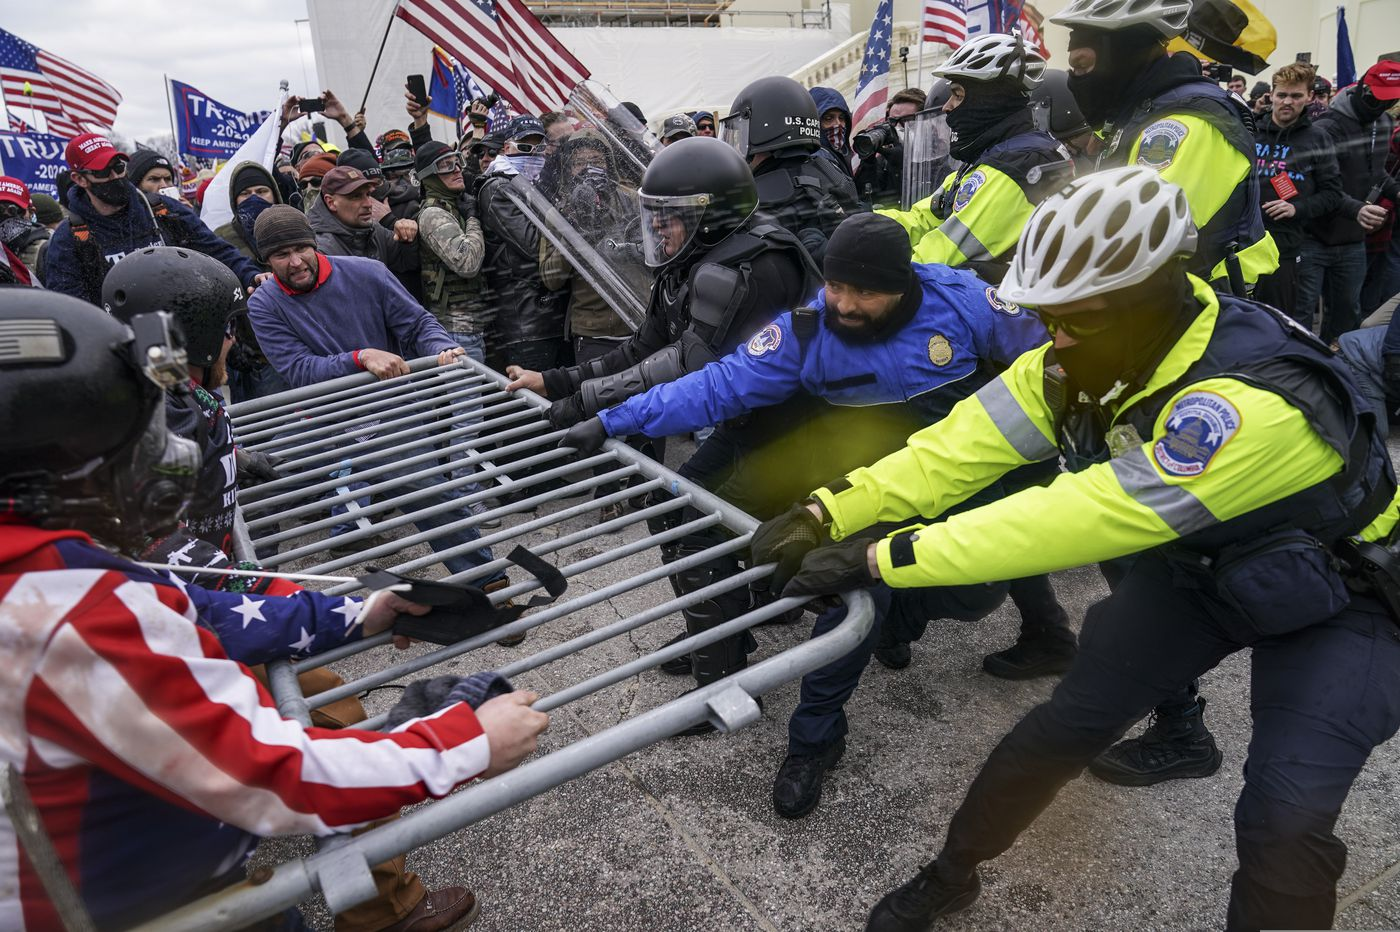 Capitol insurrection should spark end to America's warped, white supremacist way of policing | Will Bunch